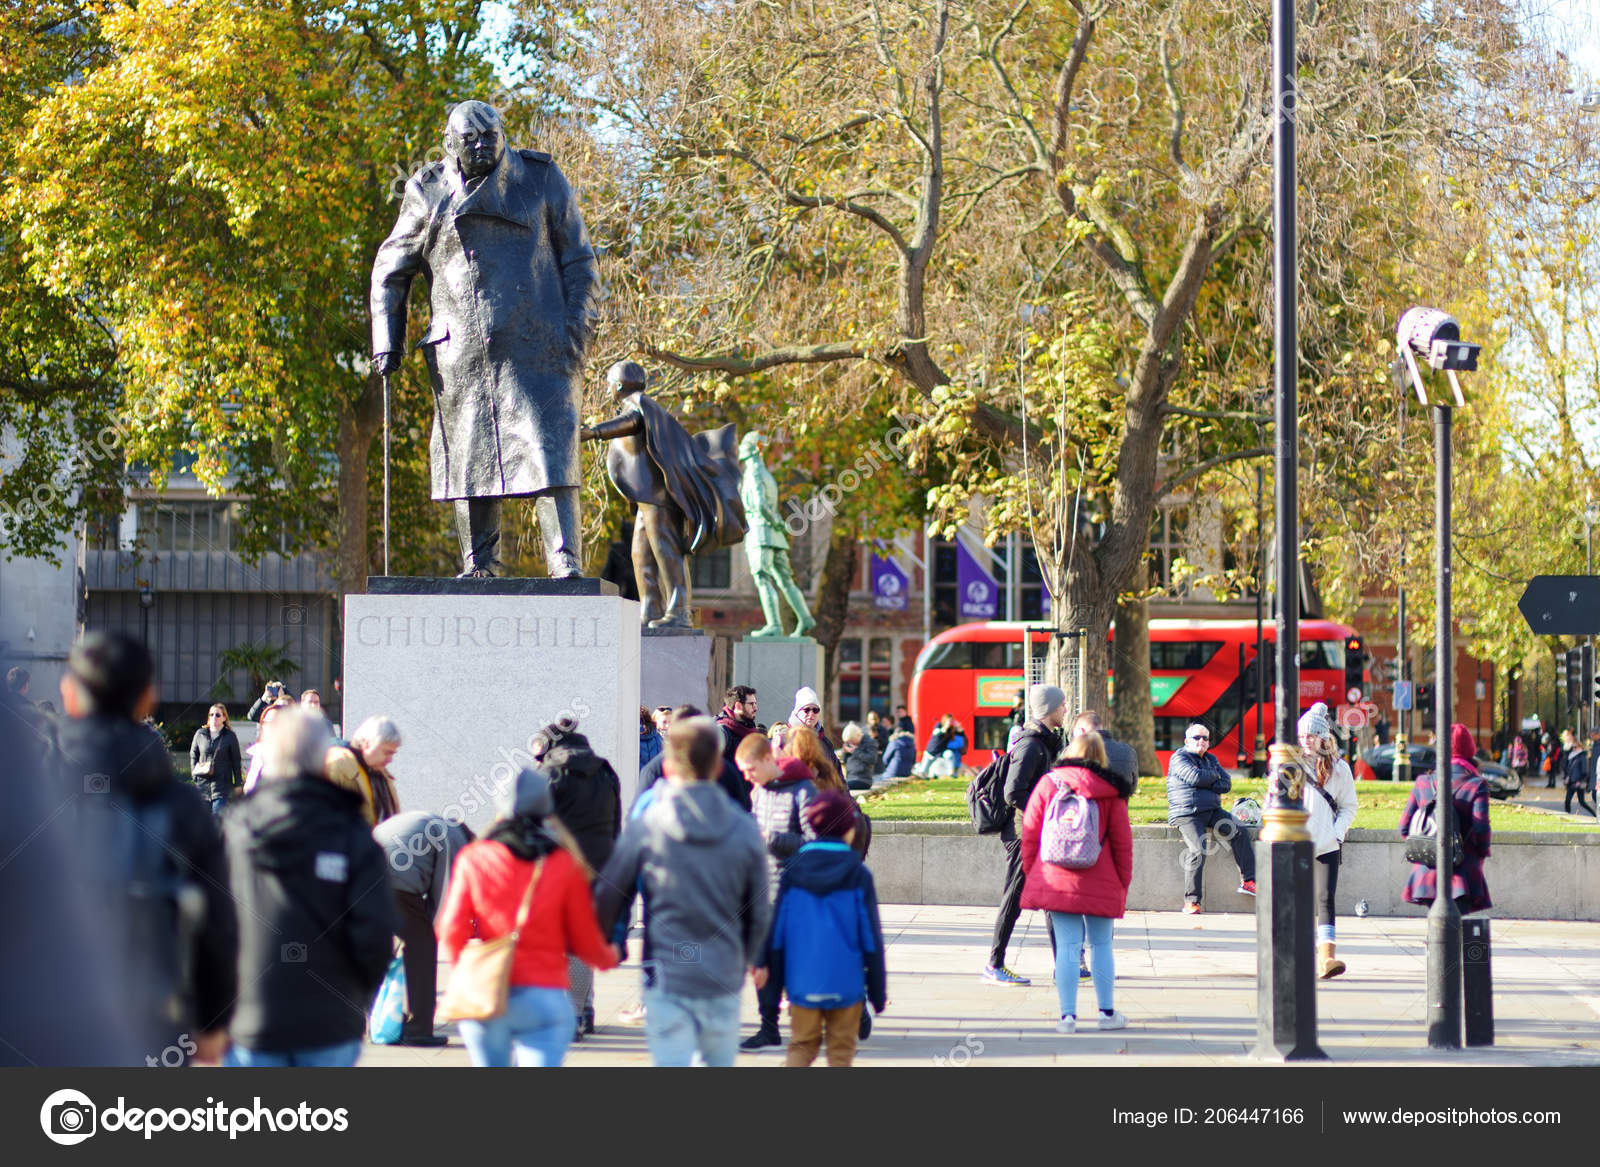 London November 2017 Lots Tourists Londoners Walking Streets